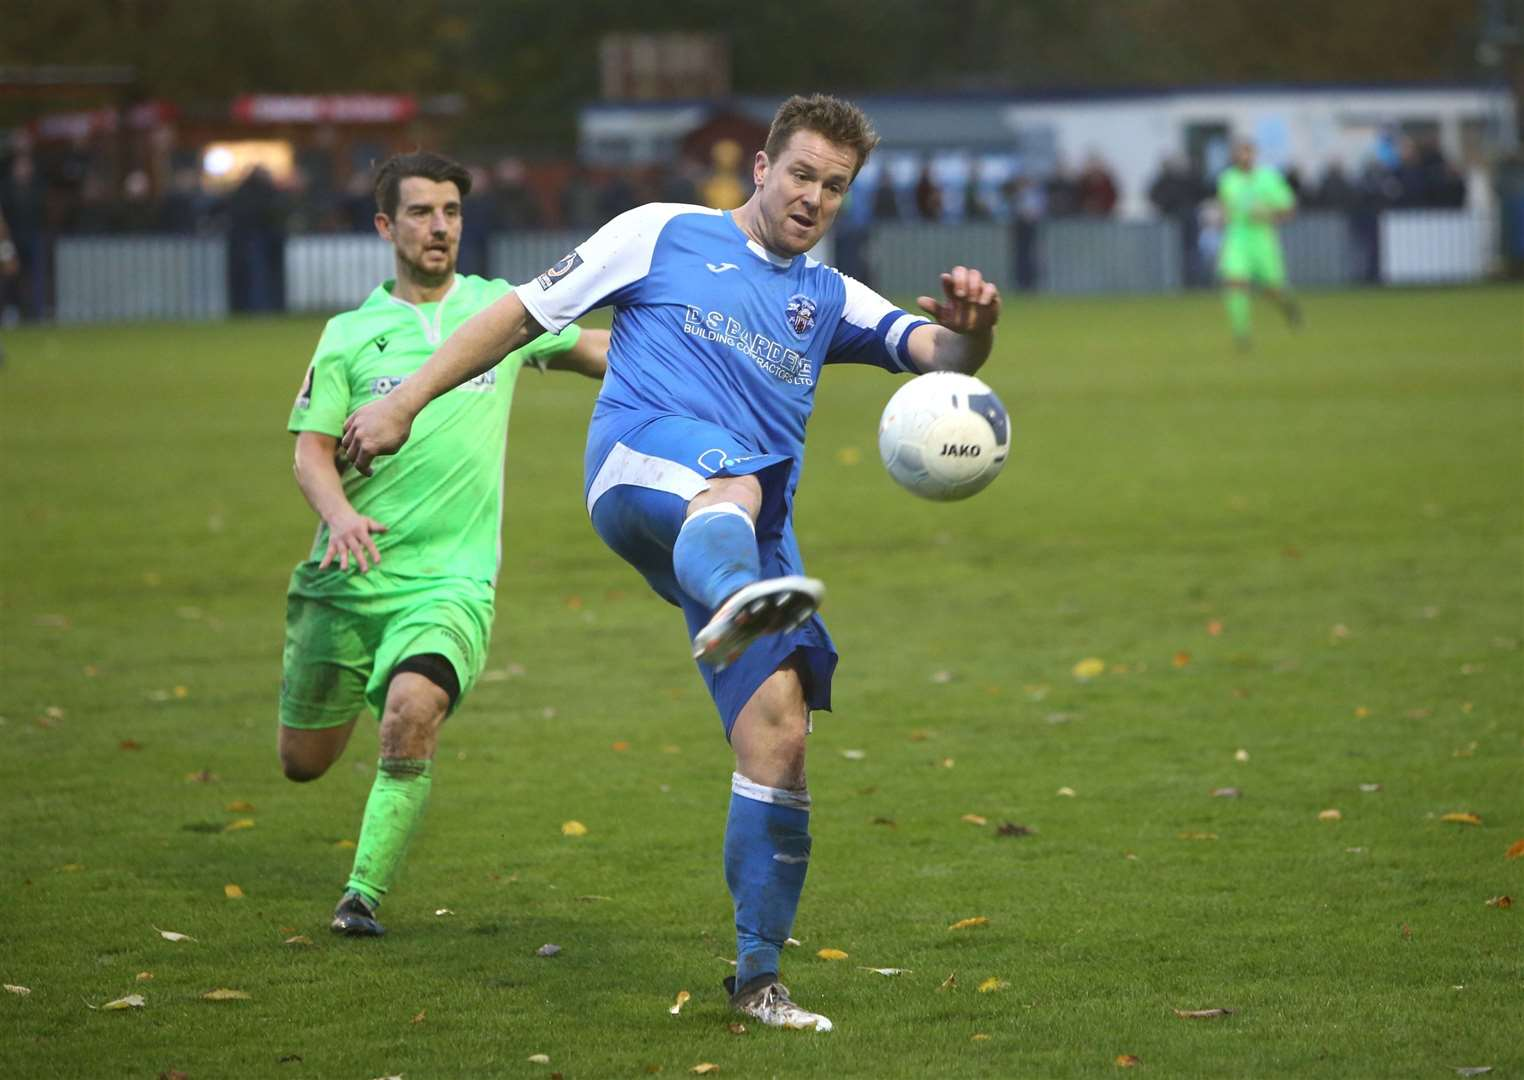 Sonny Miles in action for Tonbridge Angels Picture: David Couldridge